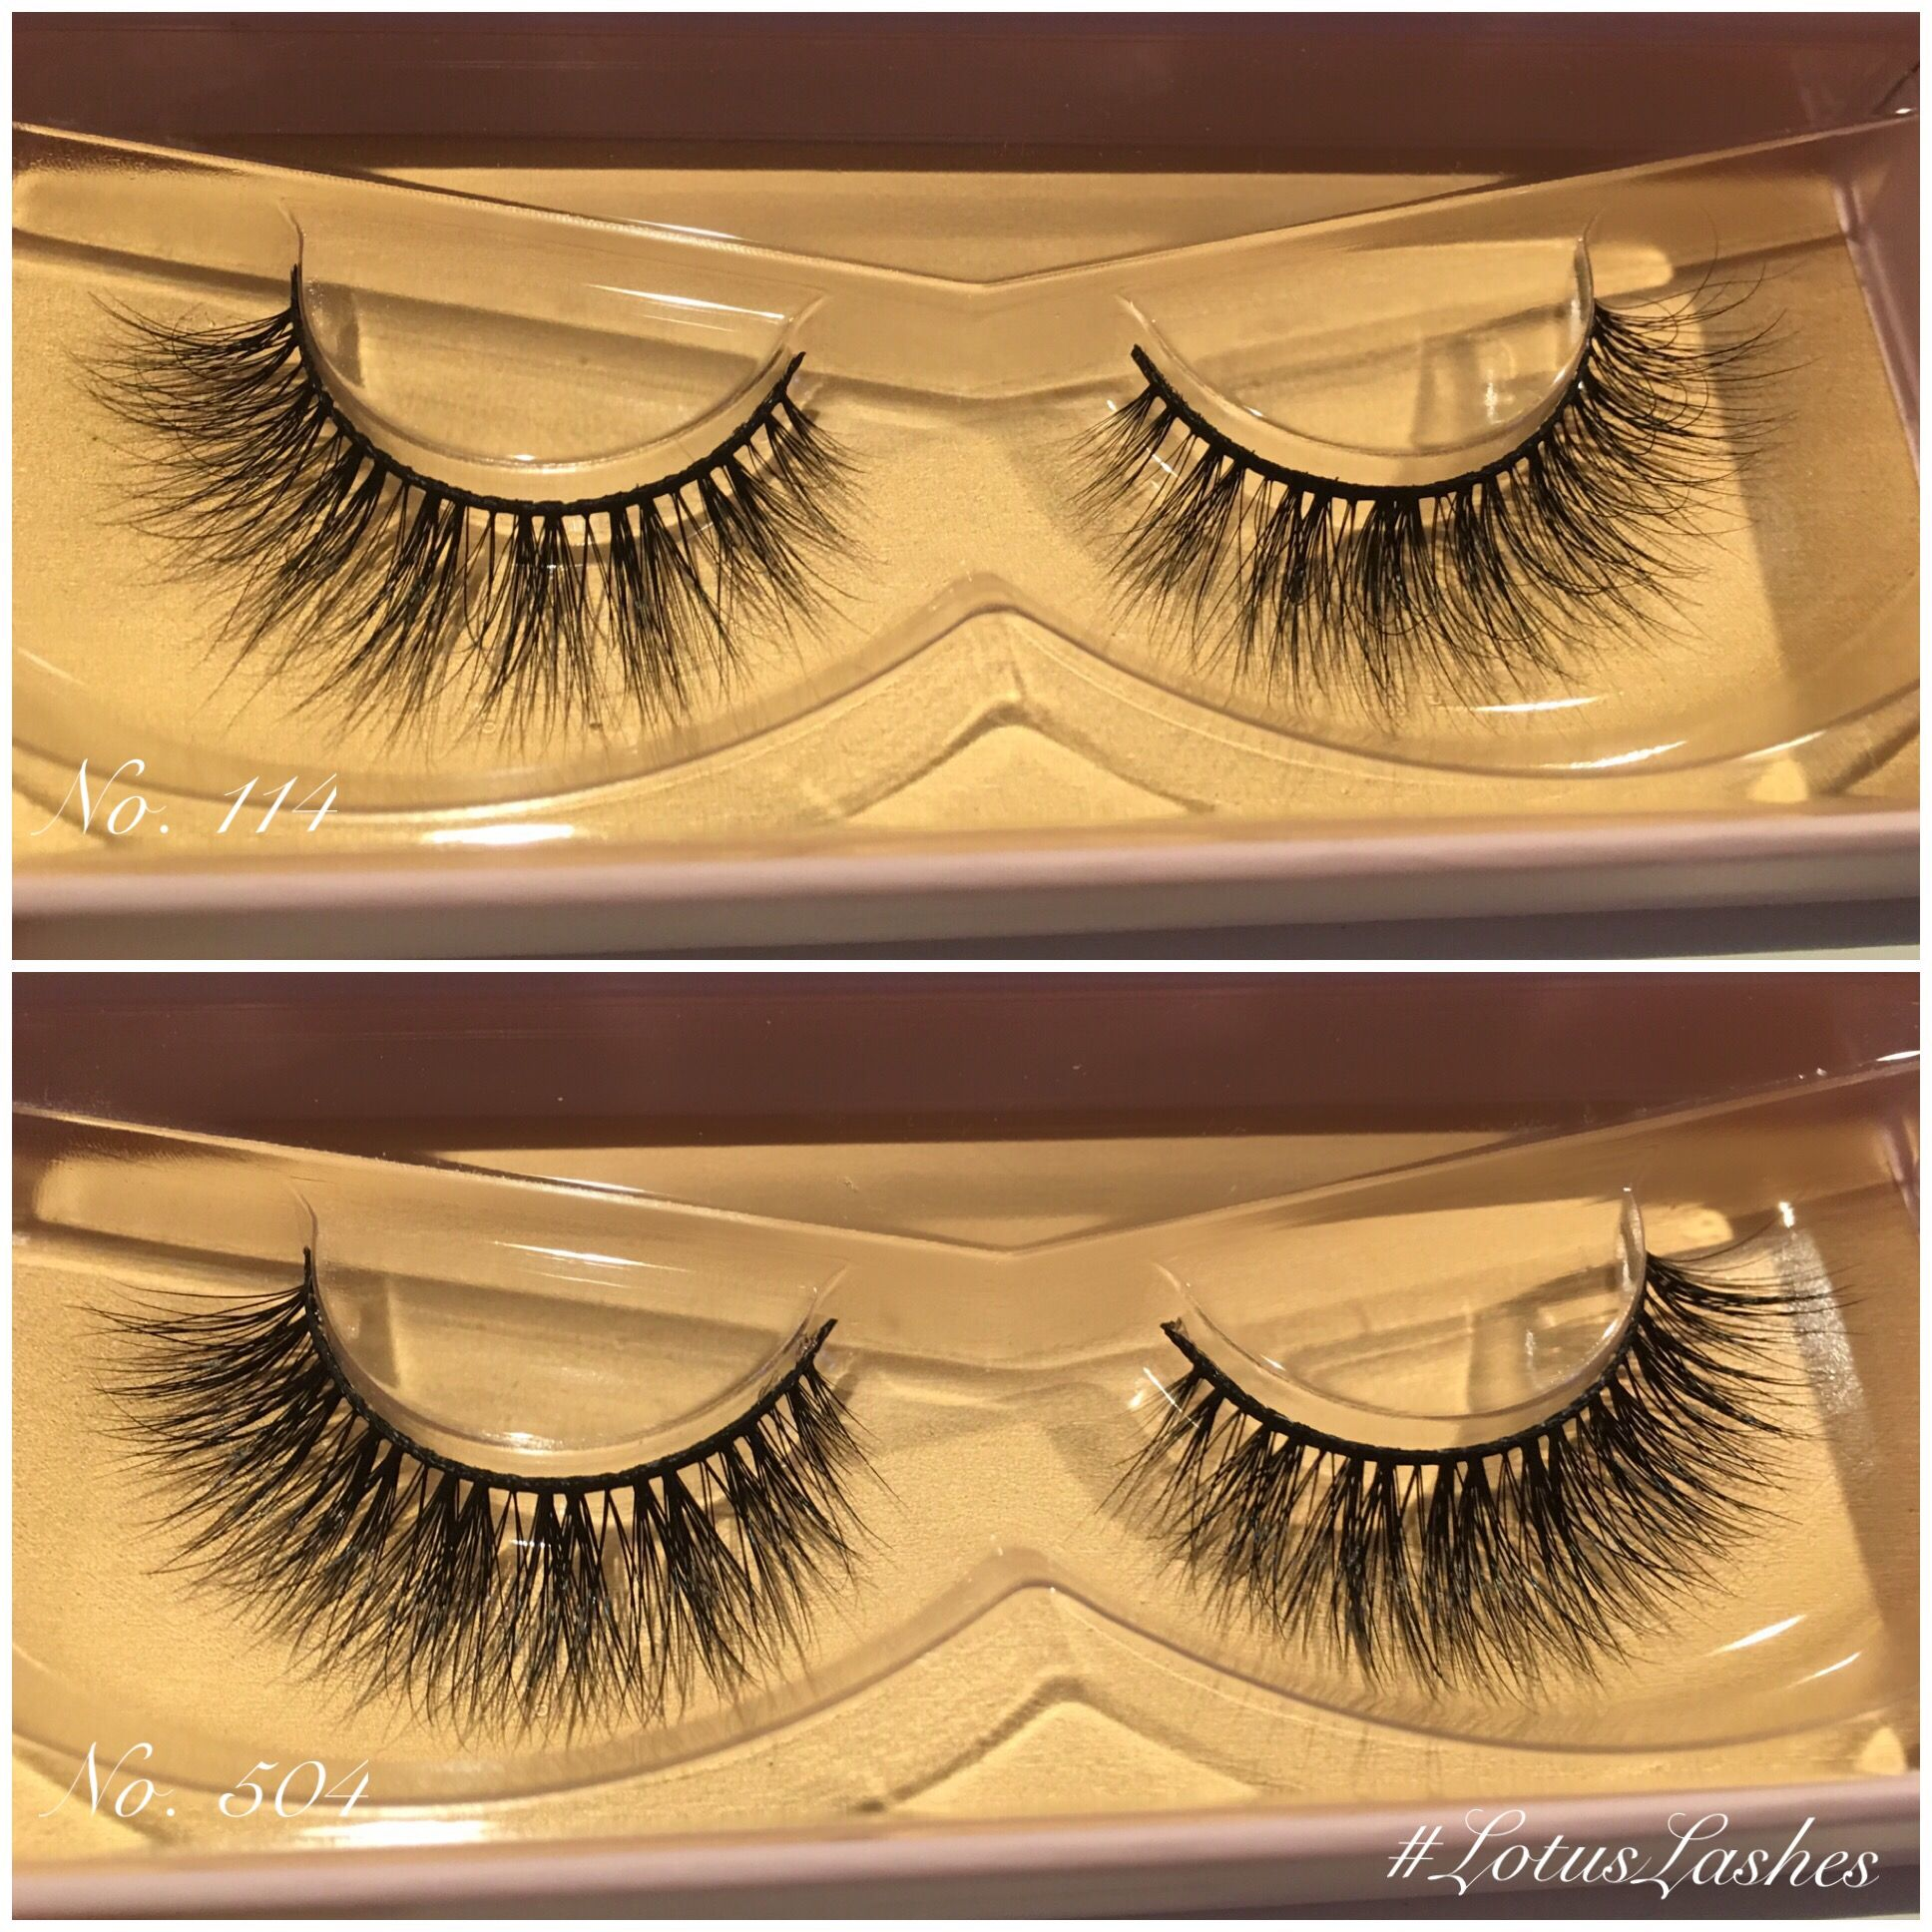 59e26fe5896 {Wispies} Light and medium volume wispy mink lashes that are ideal for  adding a touch of everyday glam to your eyes. #LotusLashes